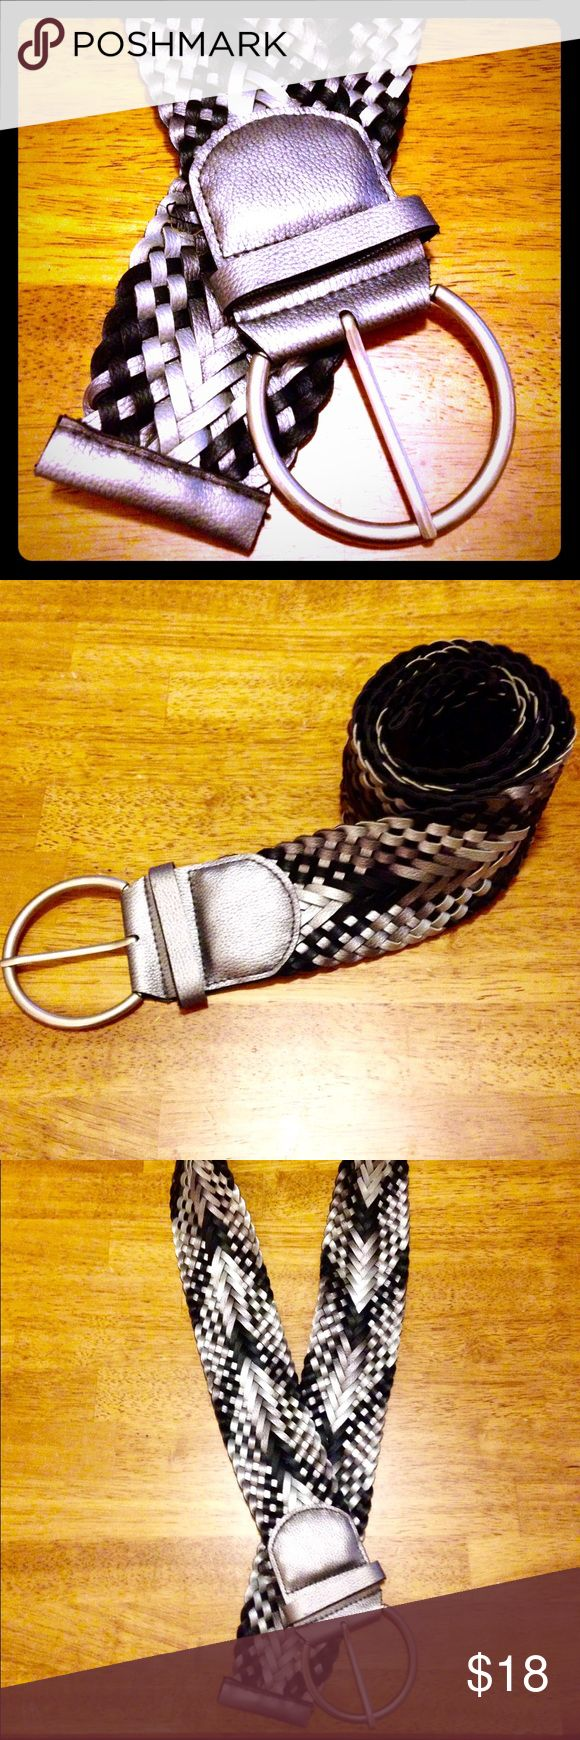 ✨NWOT✨• Black & Silver Crosshatch Design Belt NWOT • Black & Silver Crosshatch Design Belt w/ big Silvery buckle loop. NEVER USED 🎉BRAND NEW WITHOUT TAGS🎉 Accessories Belts